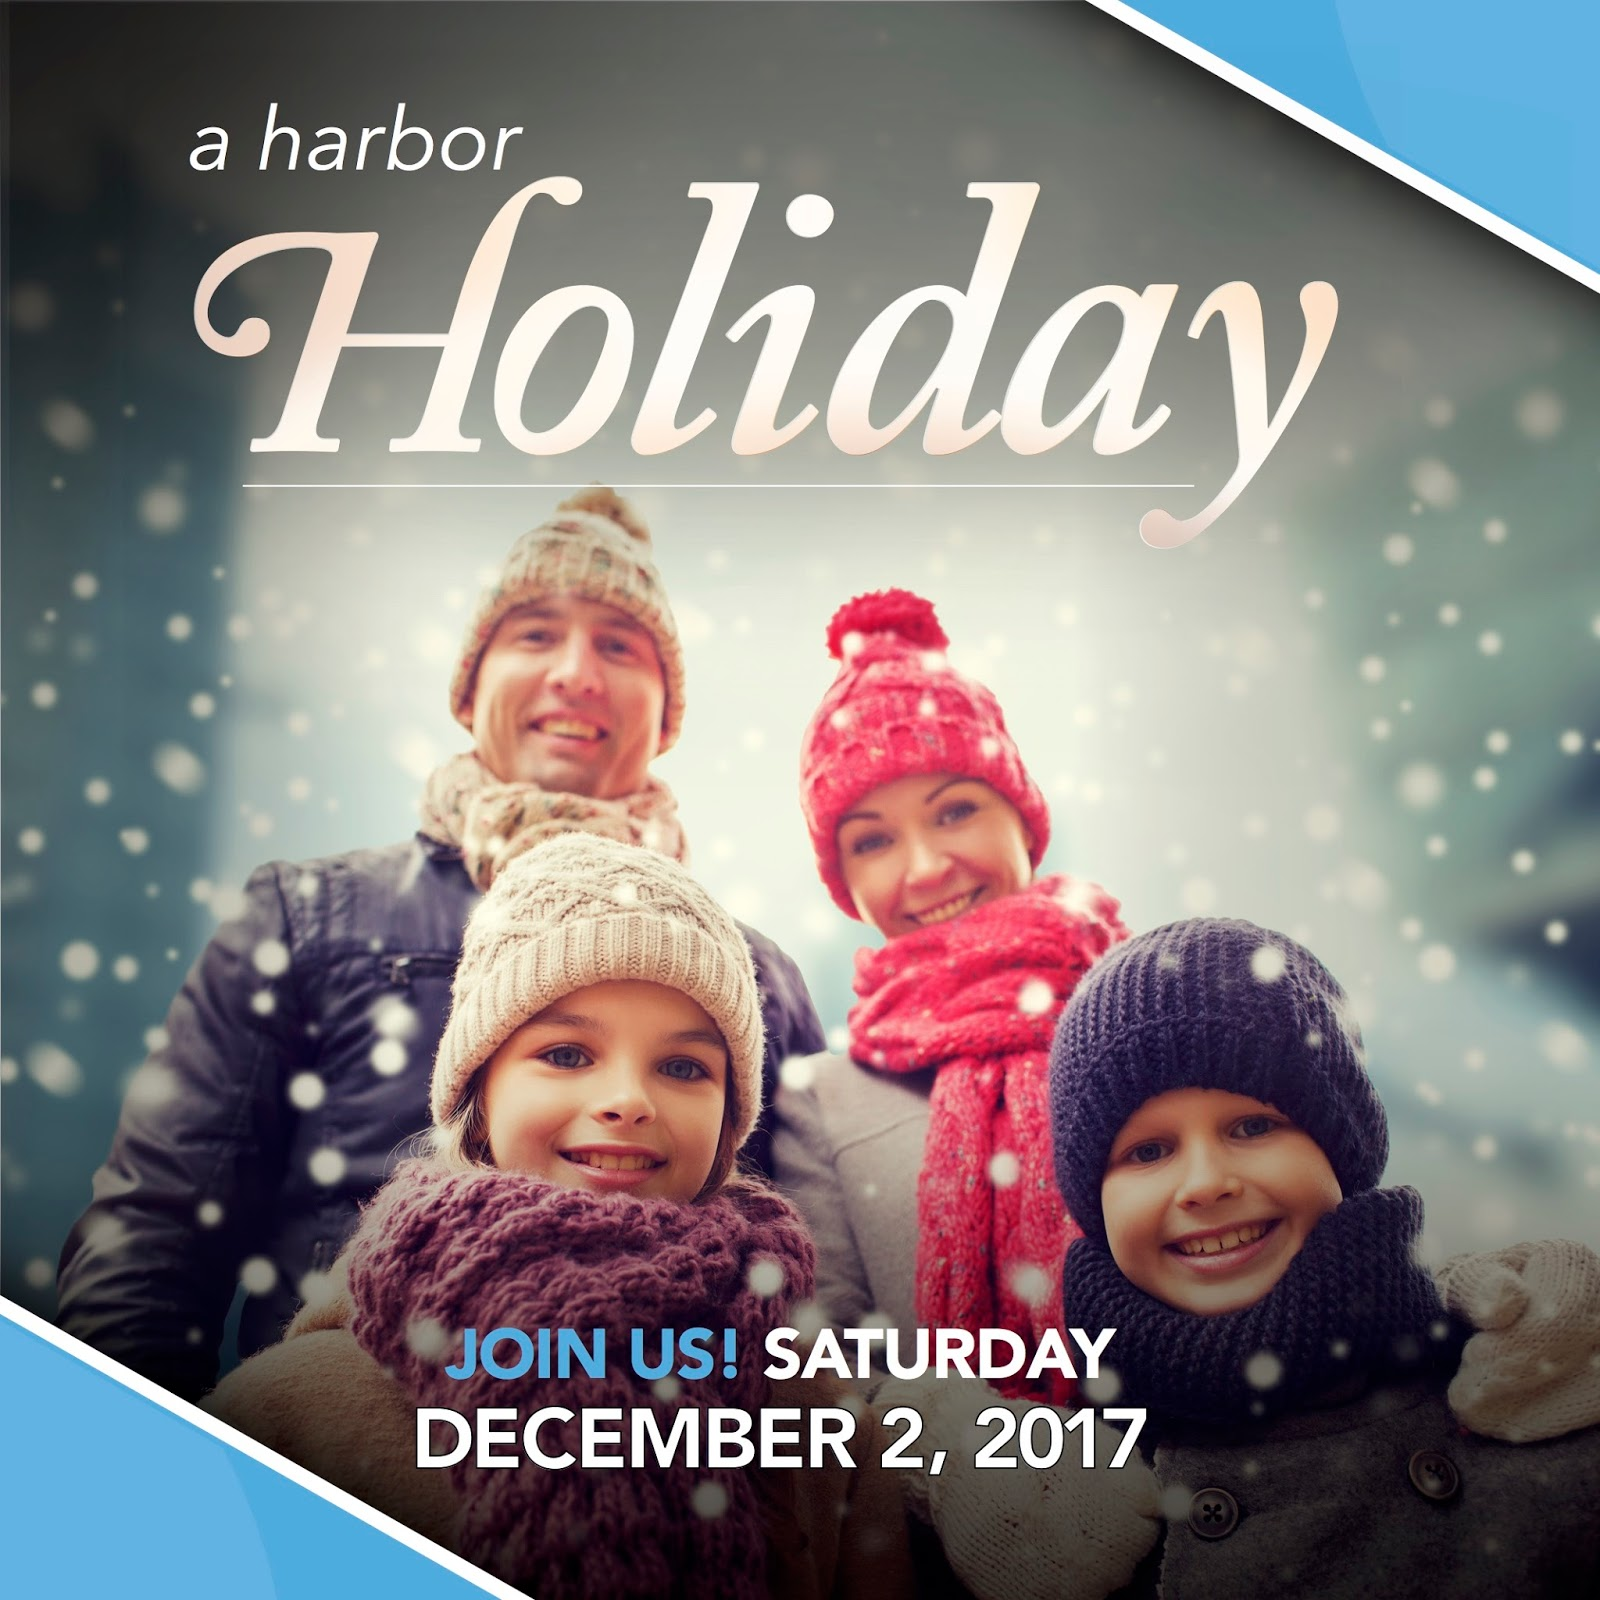 Harbor Holiday promo graphic featuring family of 4 smiling with snow falling